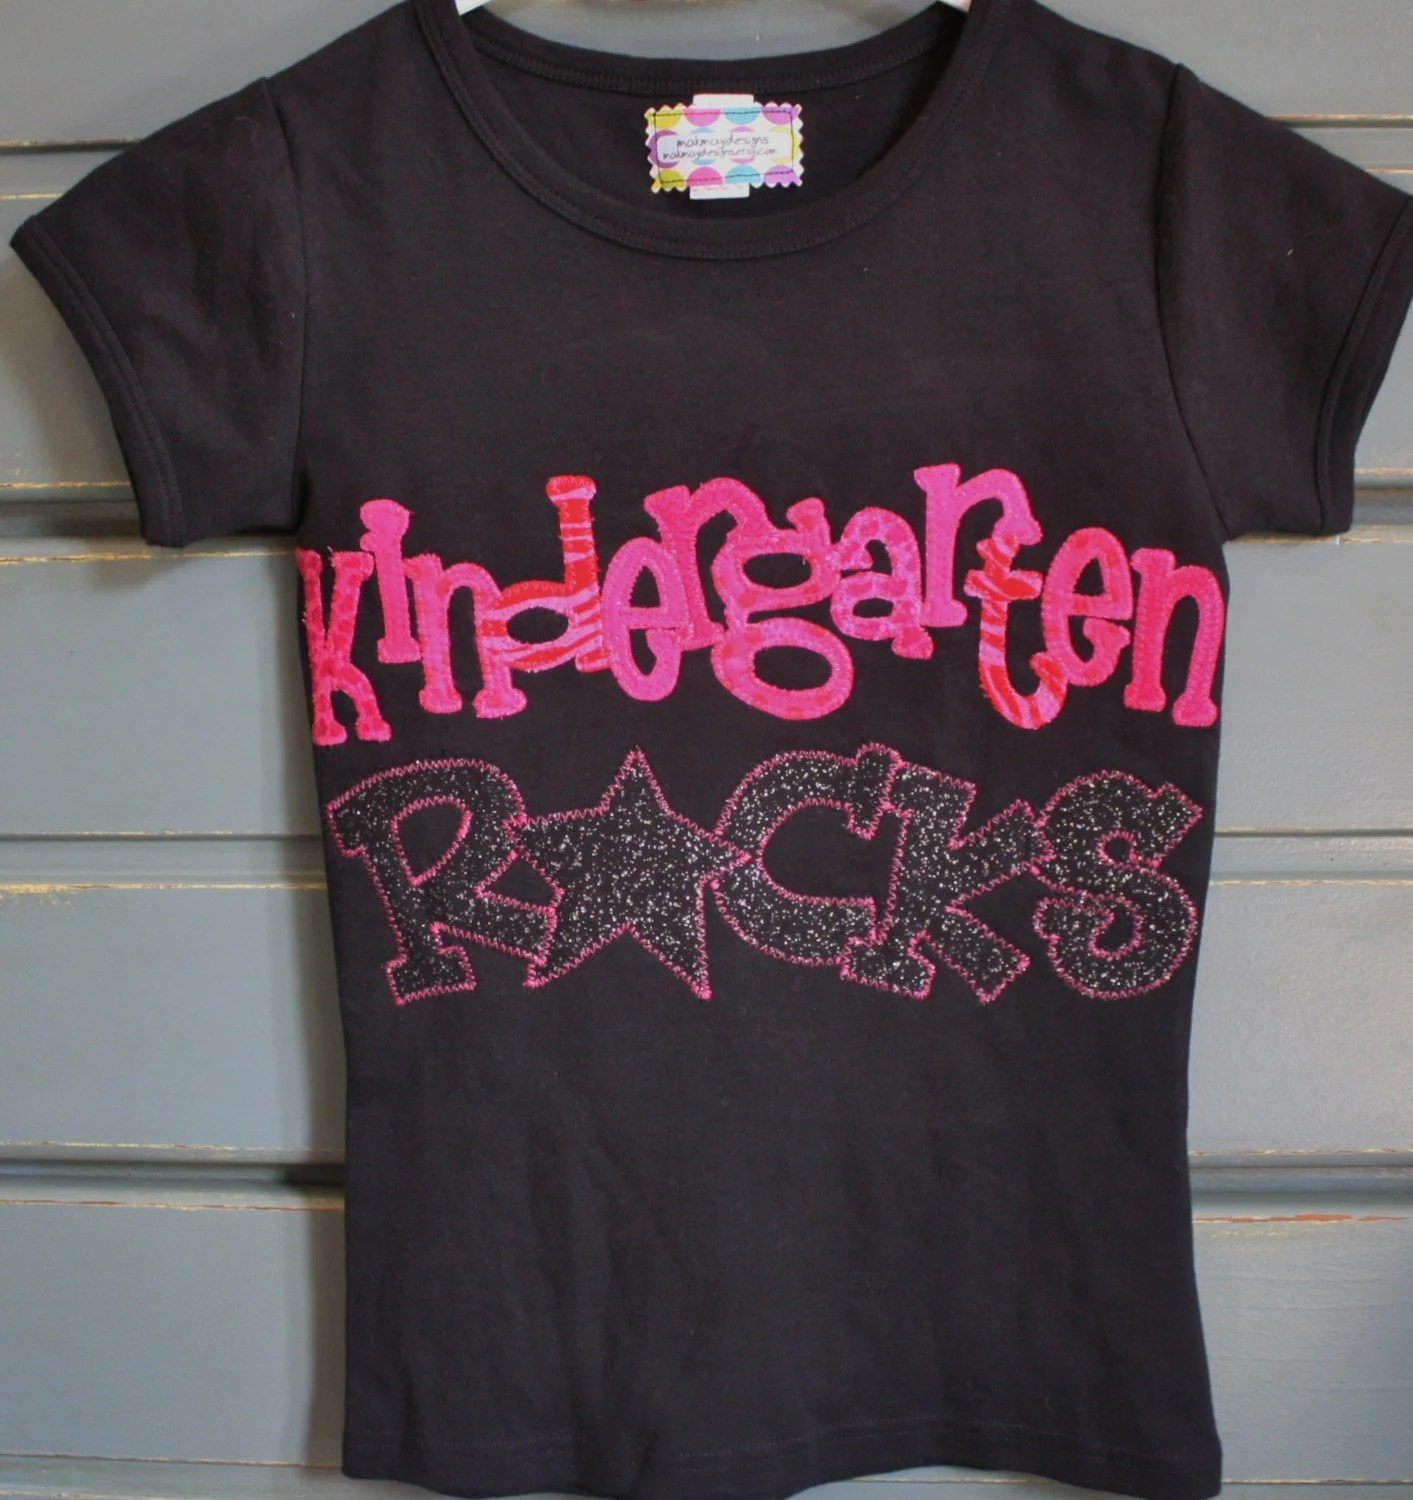 Kindergarten Shirt Girls Back To School Outfit 1st Day